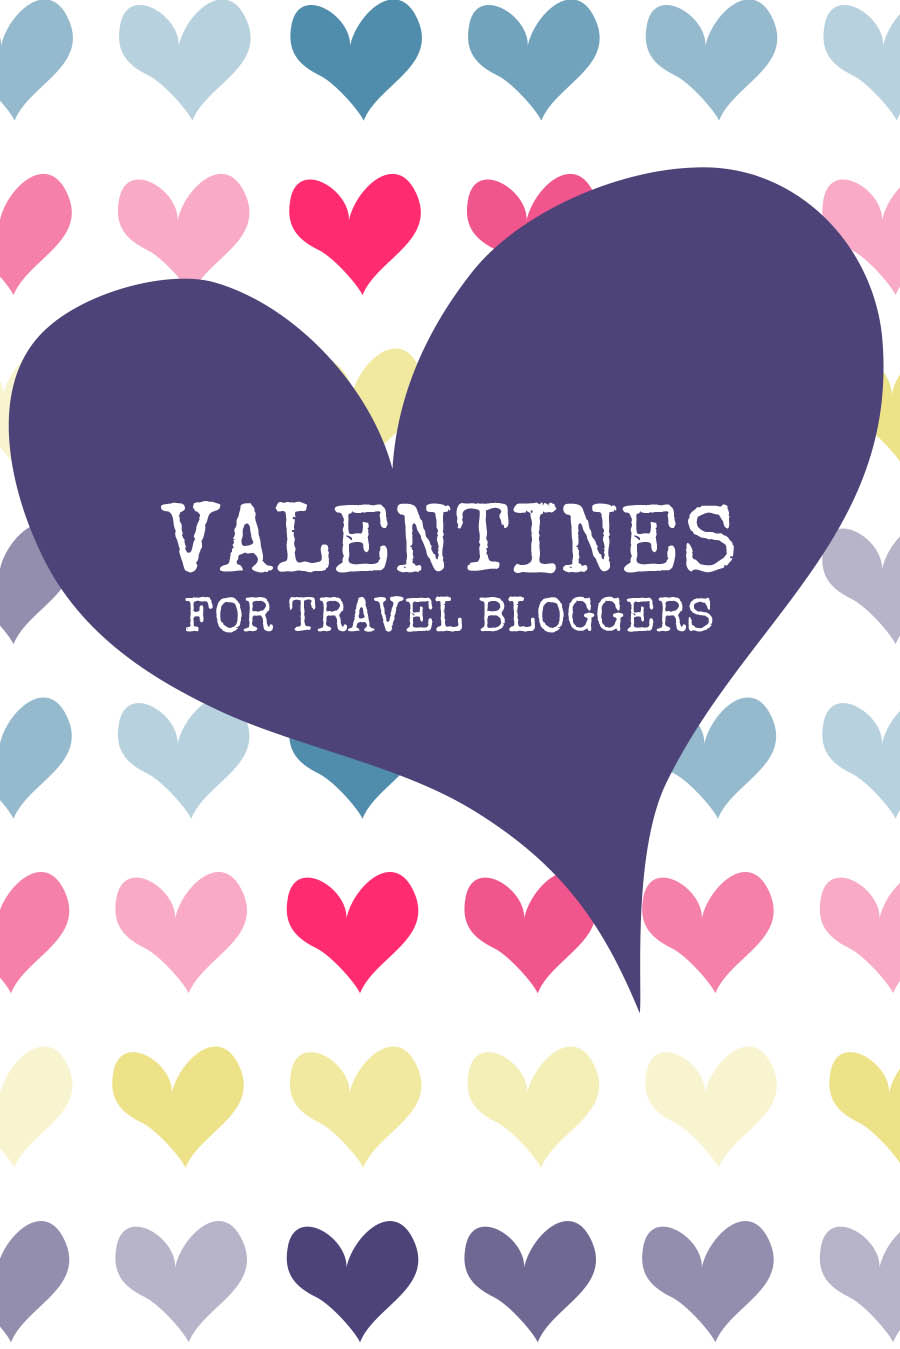 Valentines for Travel Bloggers